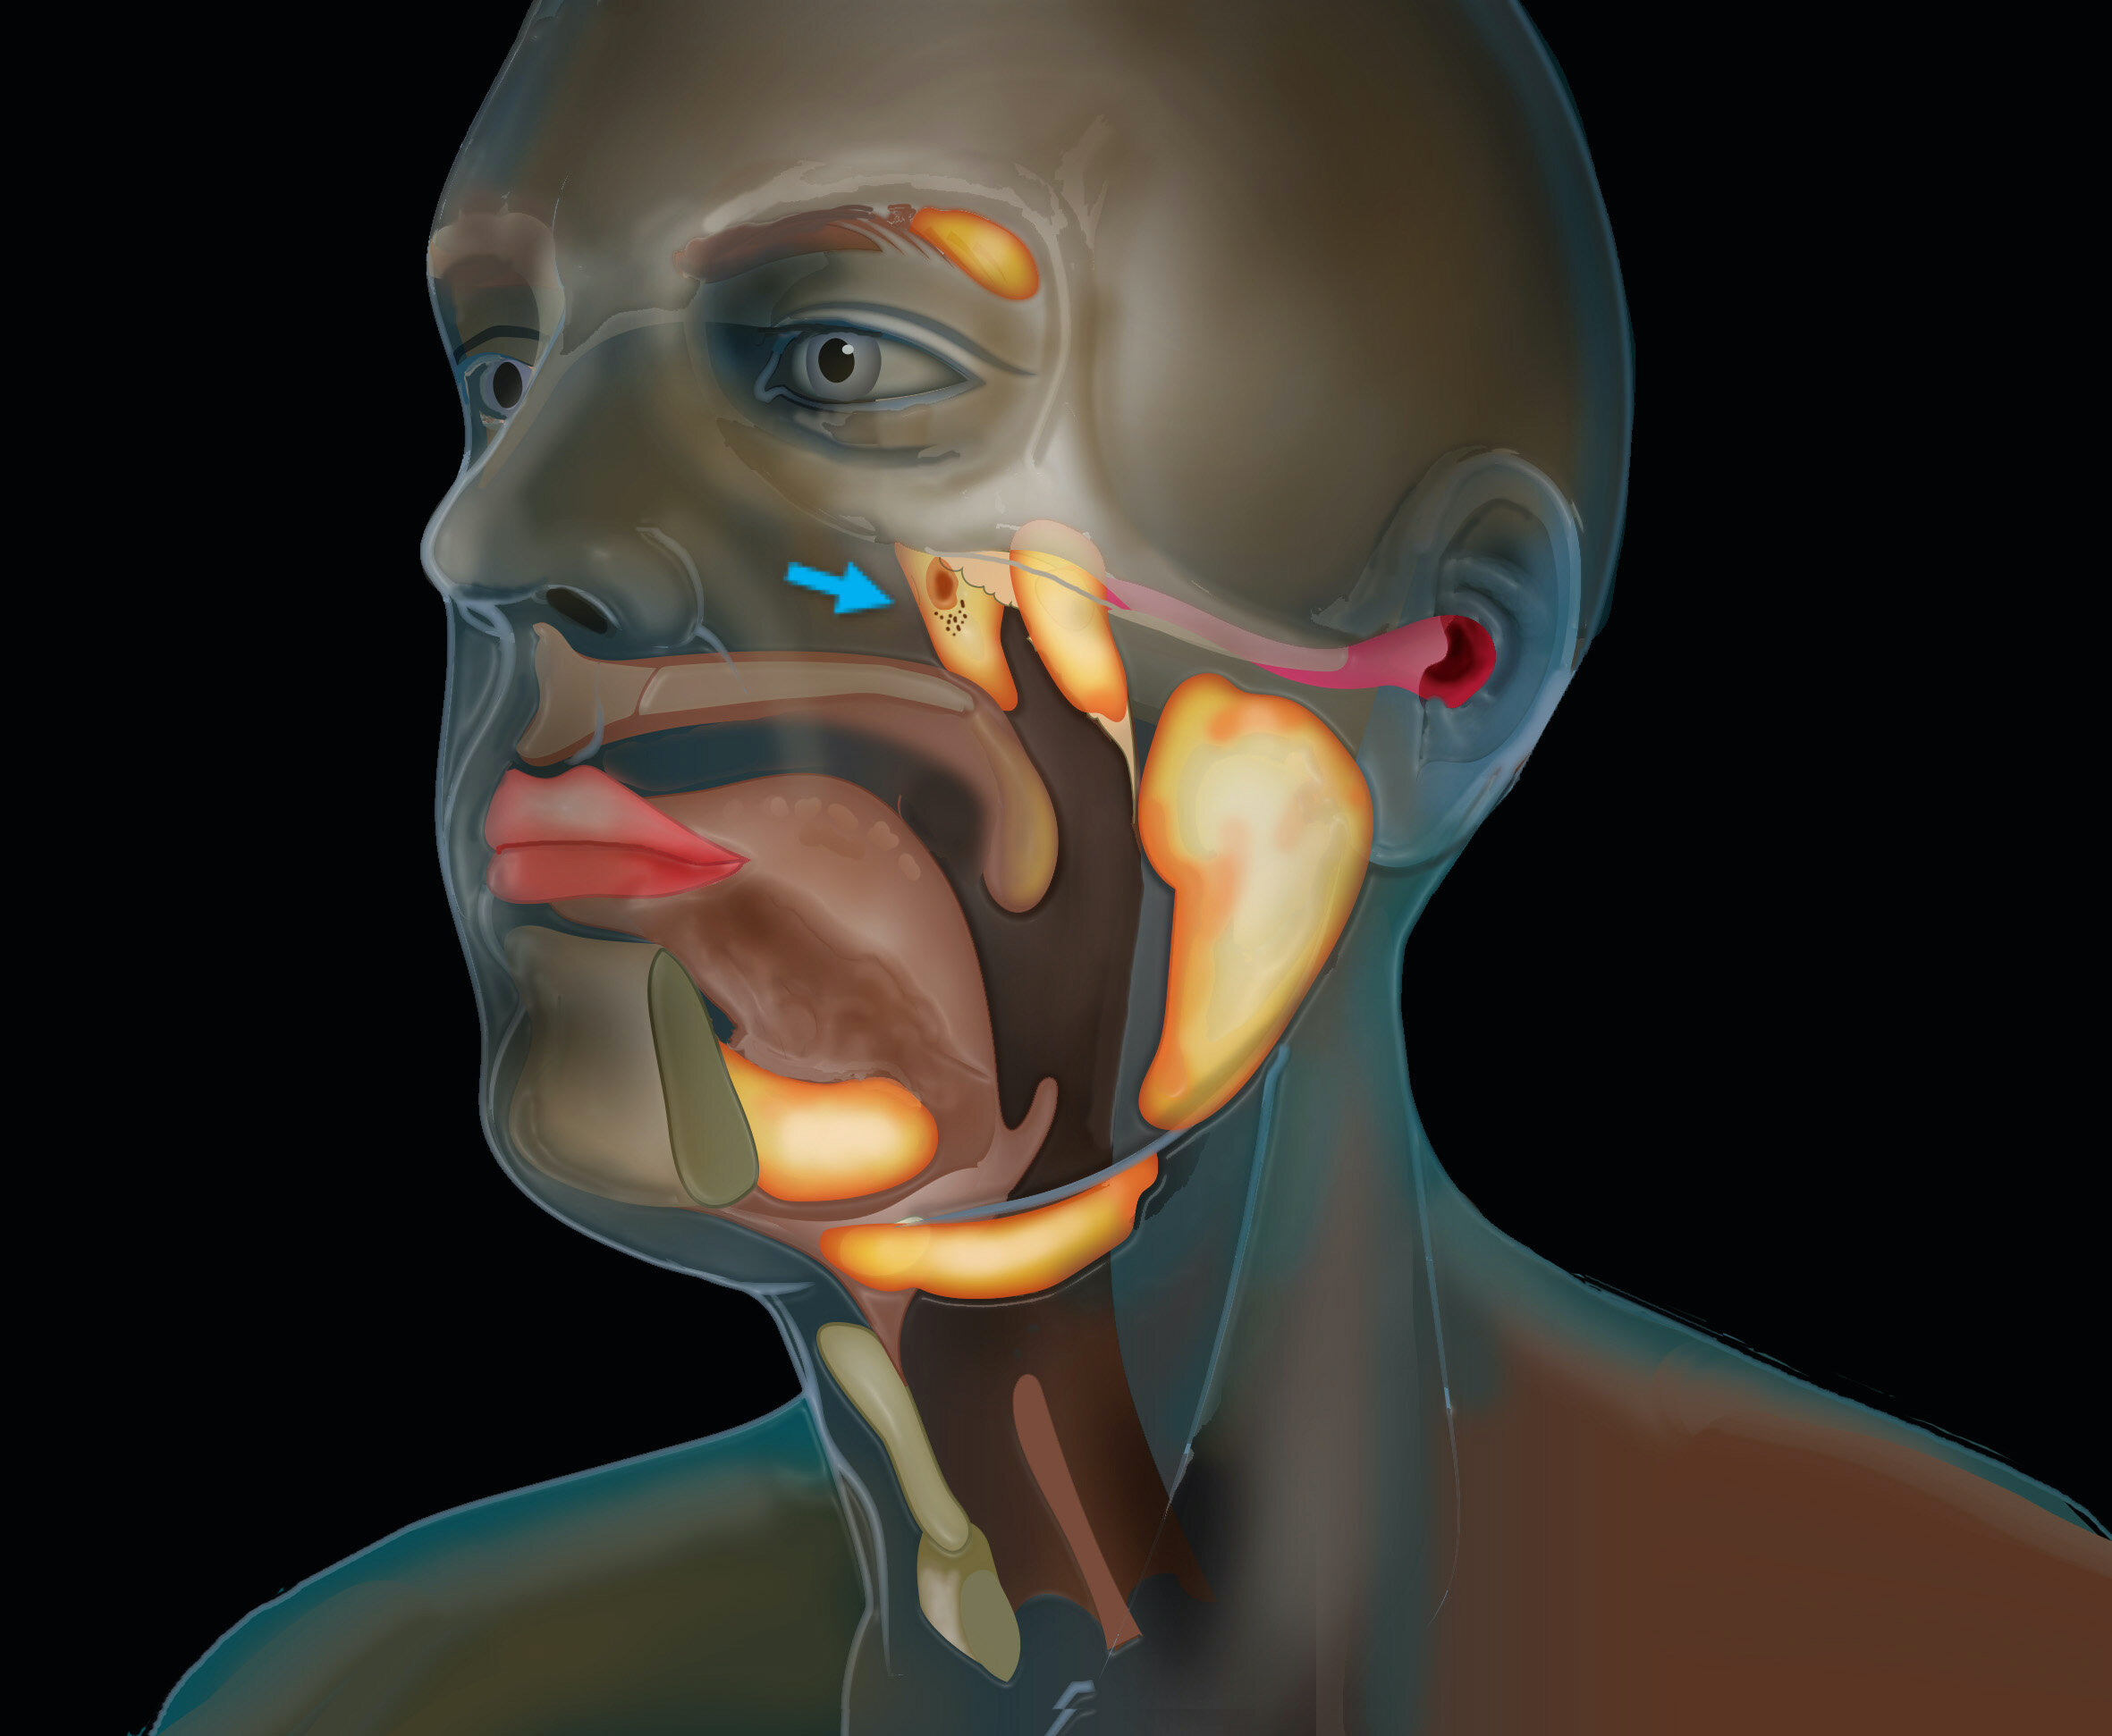 Scientists discover new organ in the throat